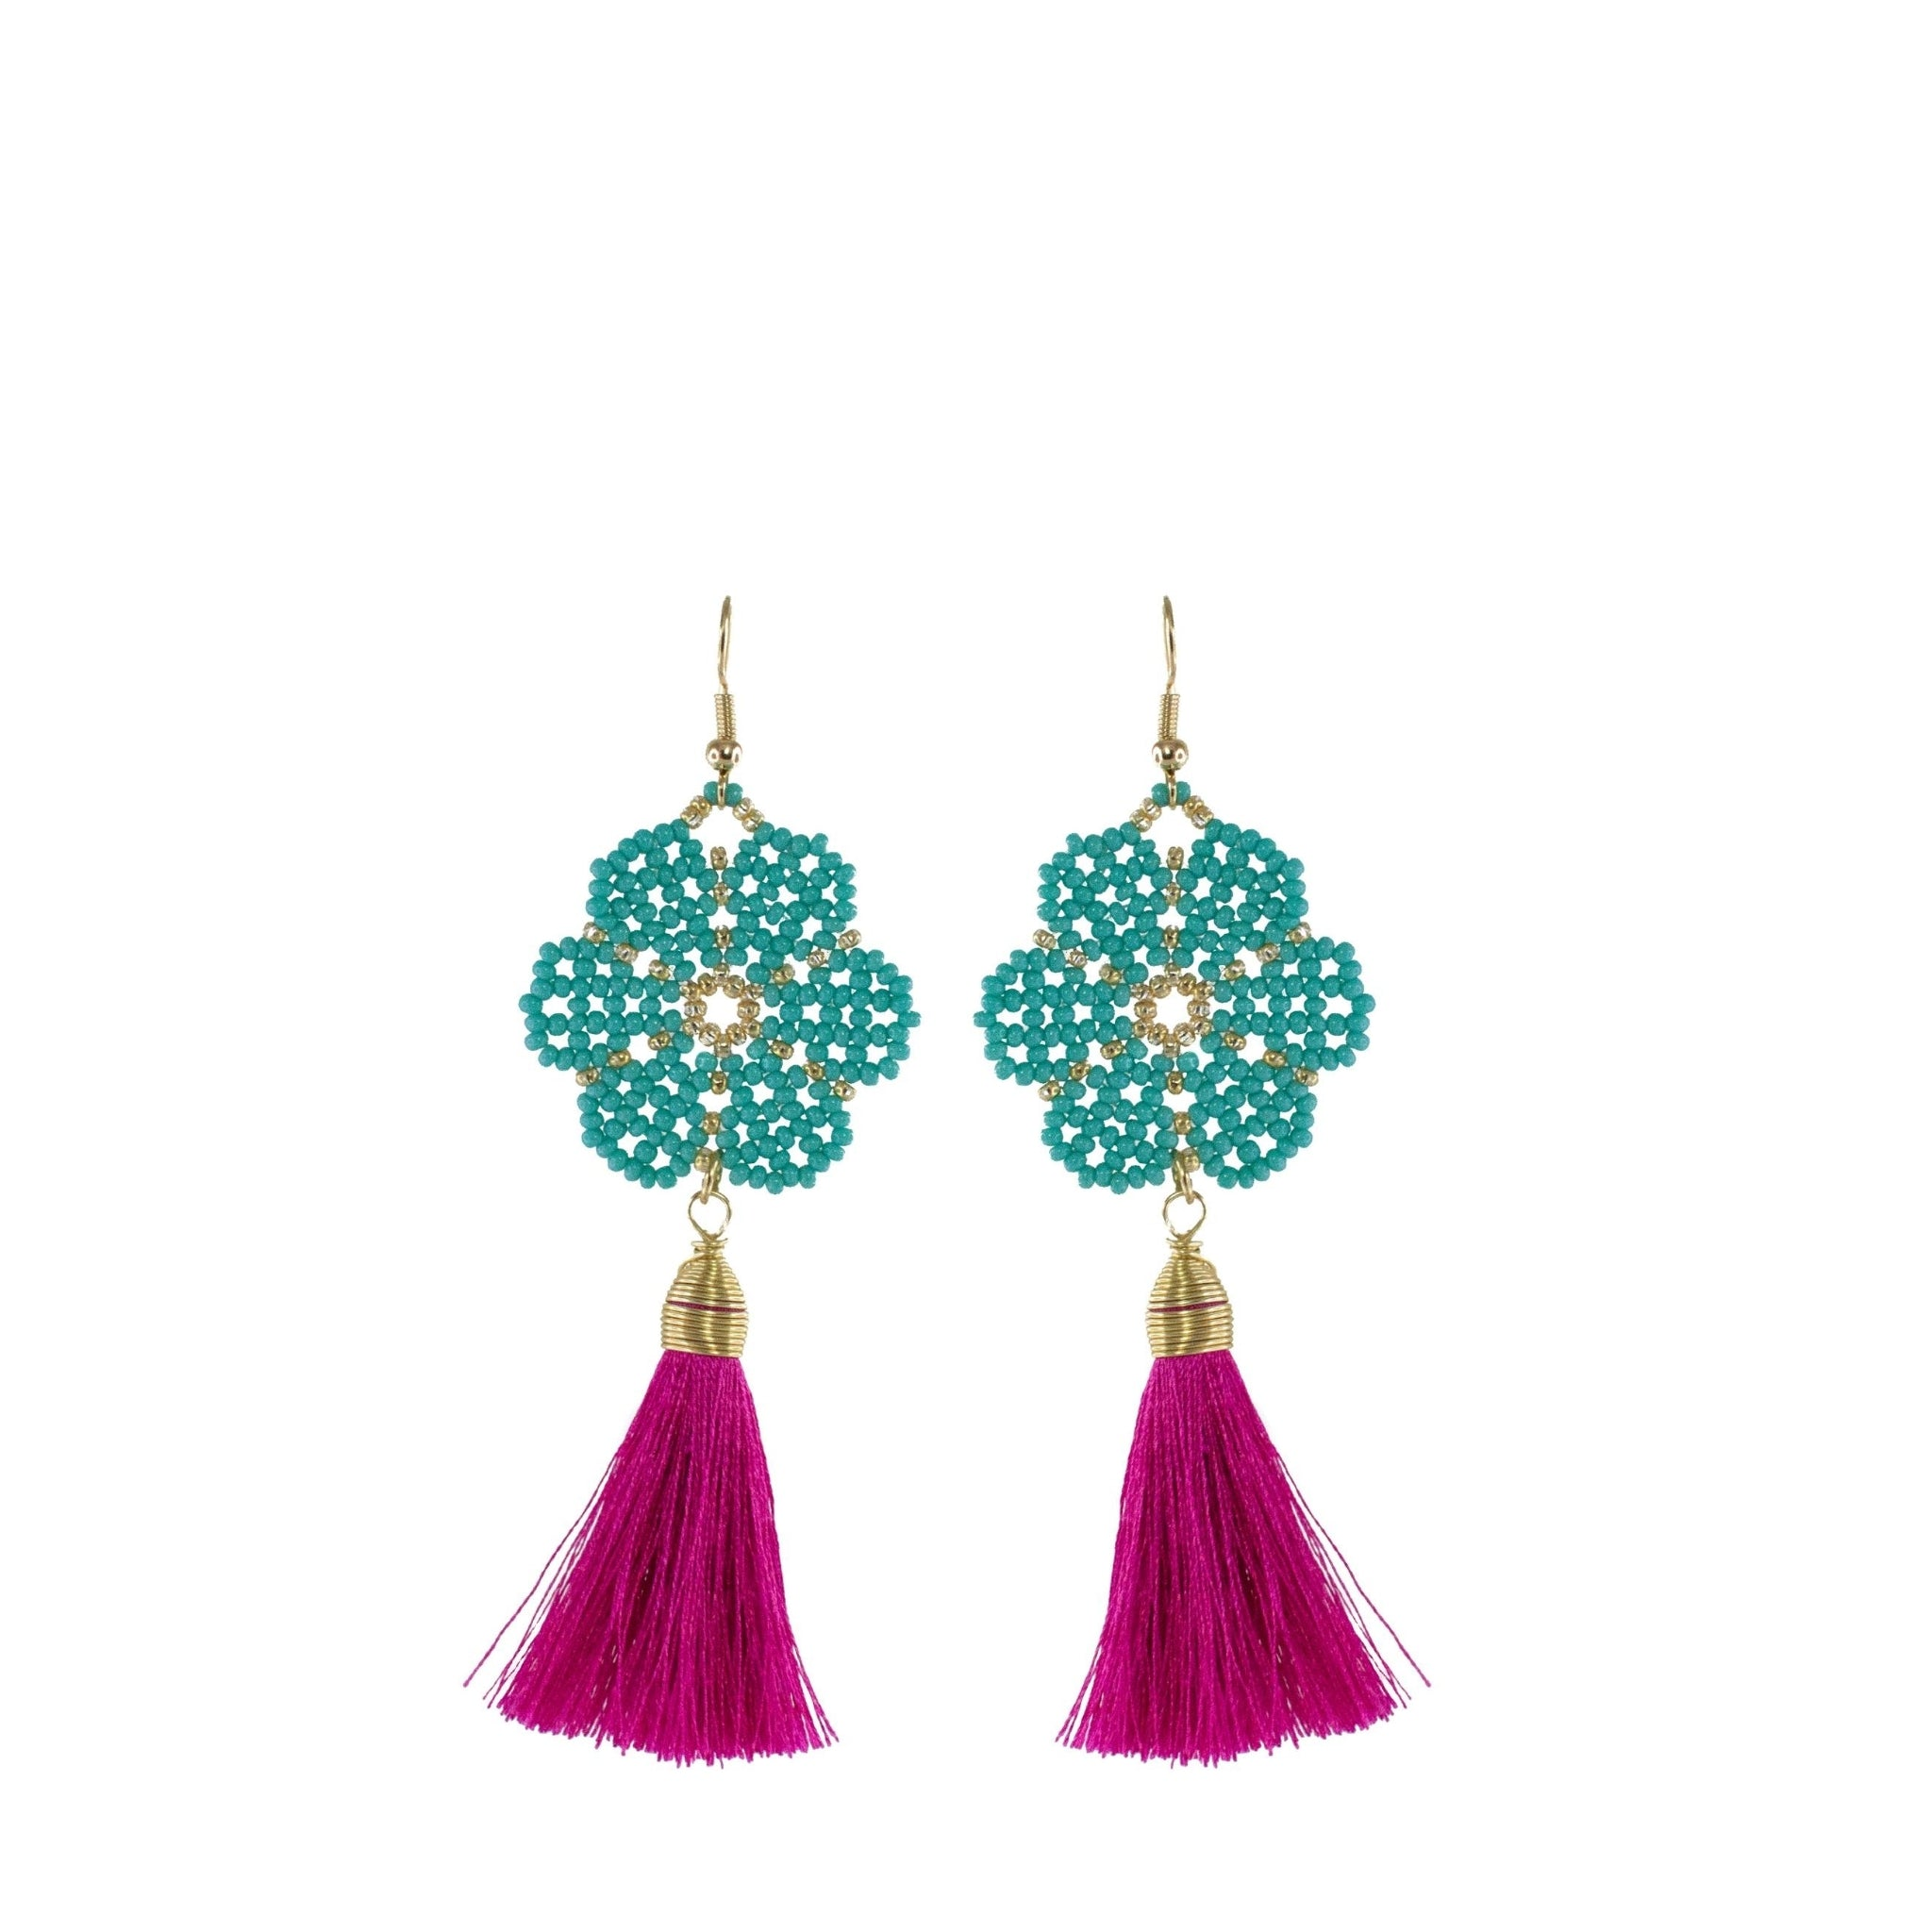 Huichol and Silk Earrings Teal and Hot Pink 1